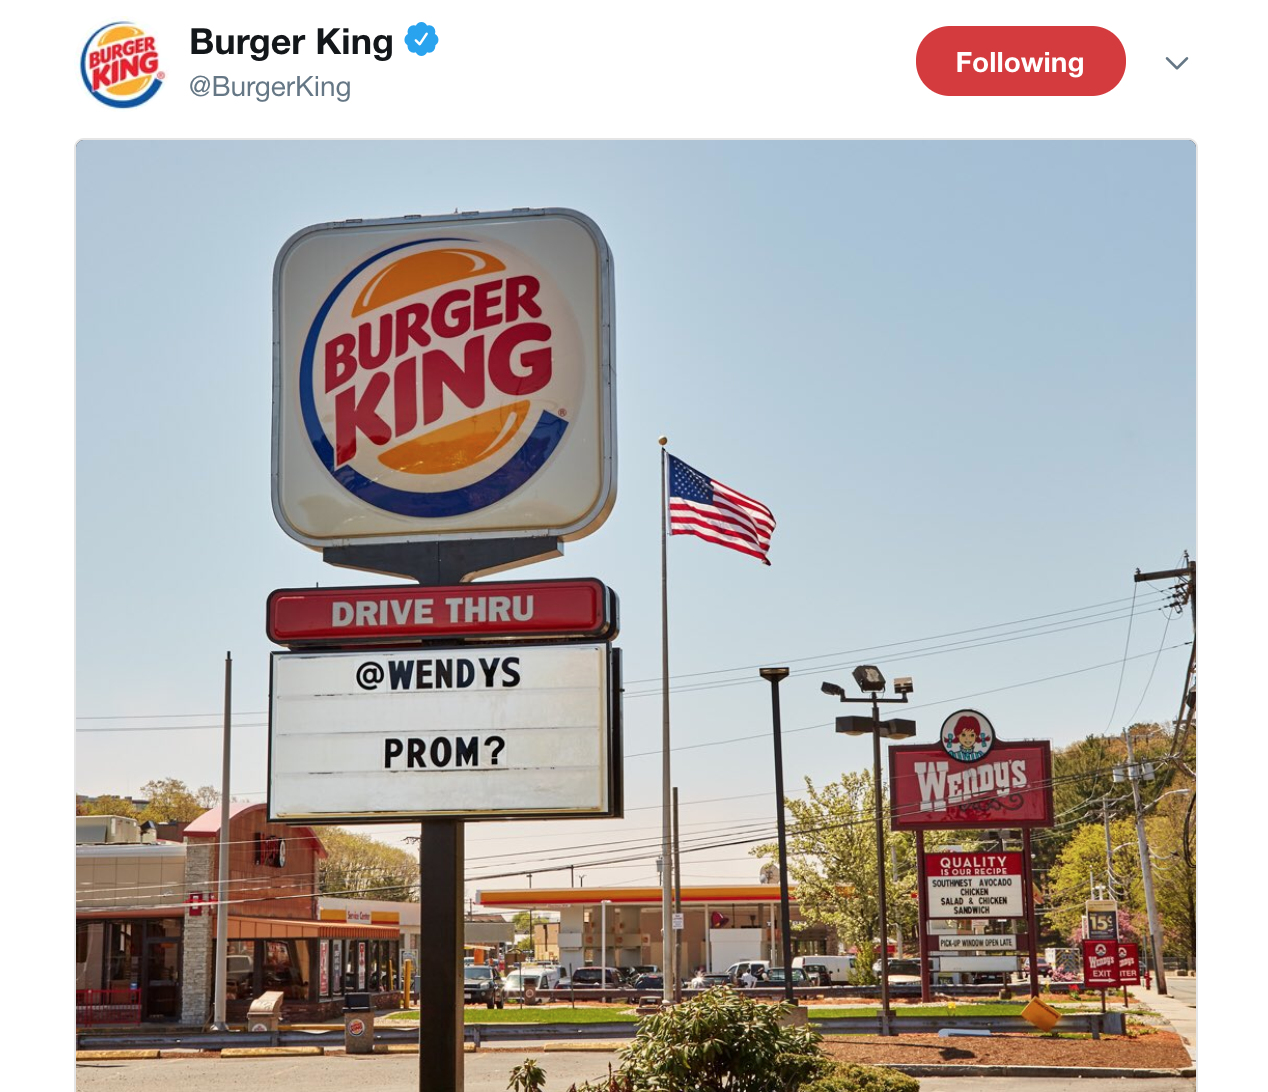 Burger King Social Media Marketing